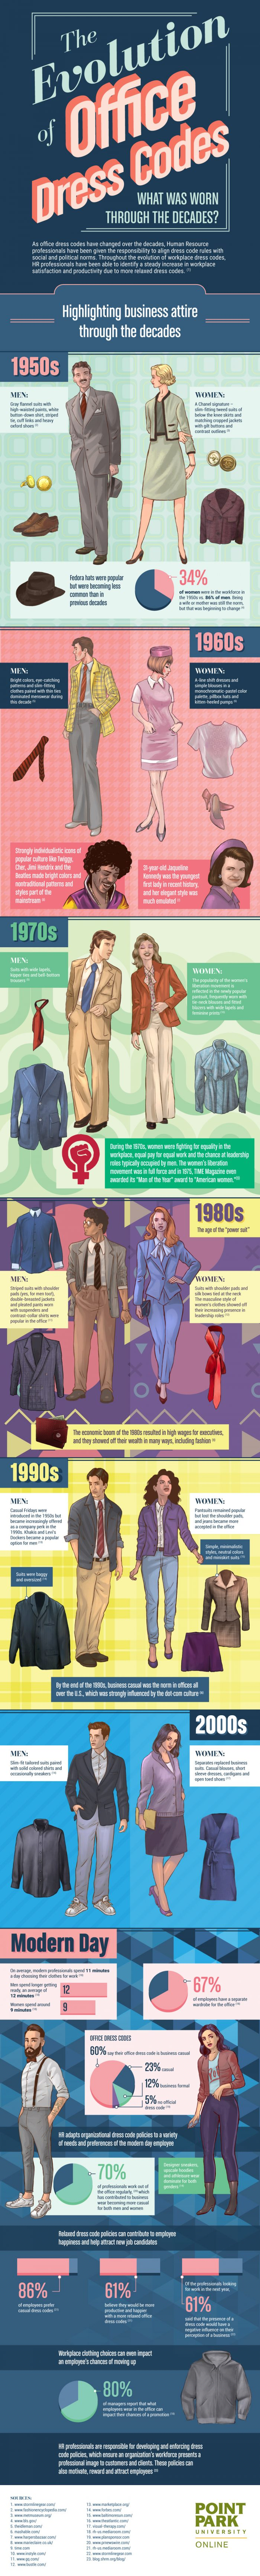 evolution-of-office-dress-codes-700x6943